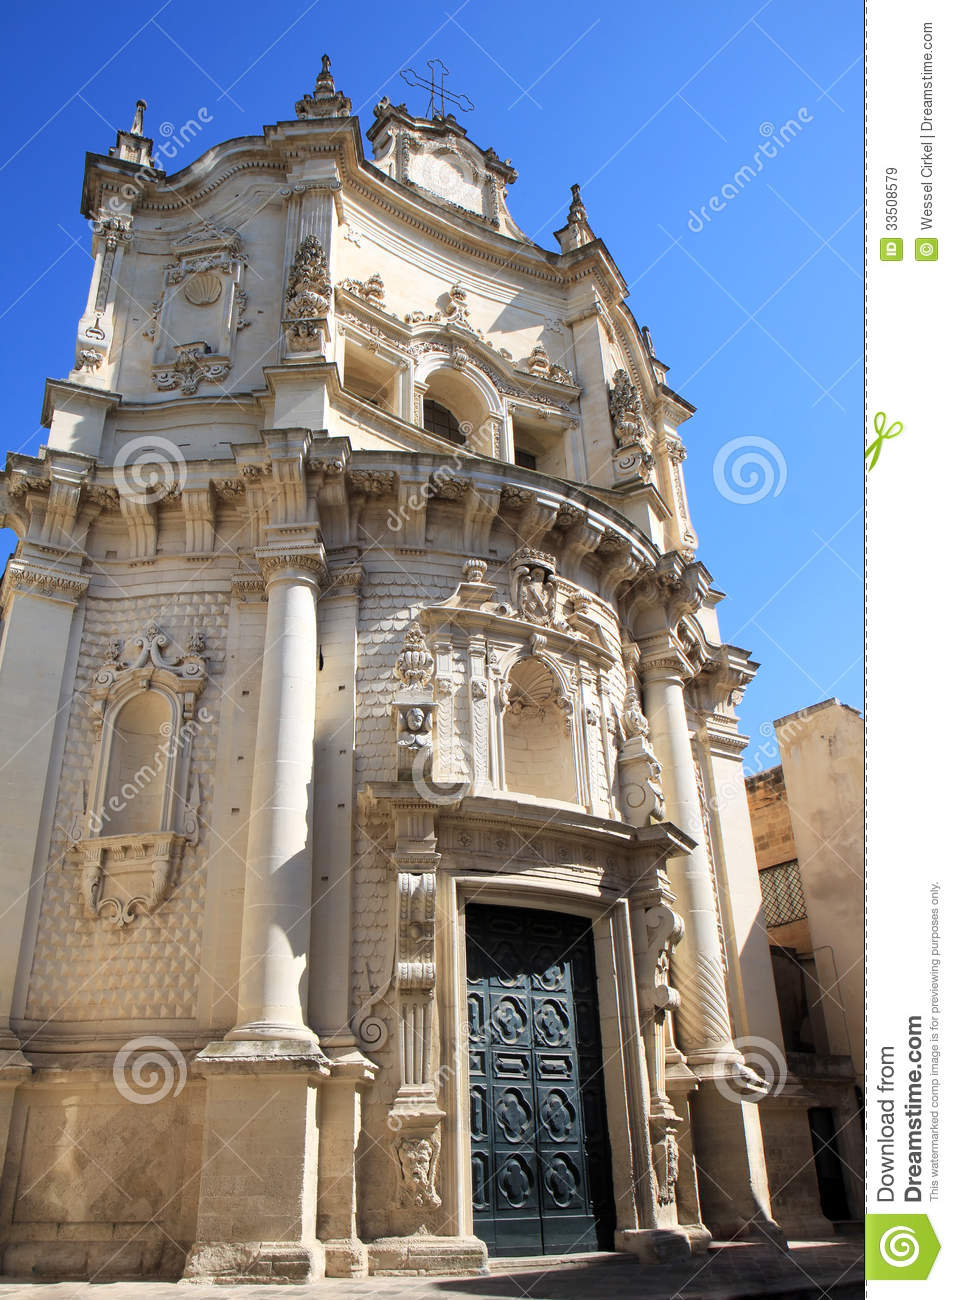 ... San Matteo, Lecce, Italy Royalty Free Stock Images - Image: 33508579